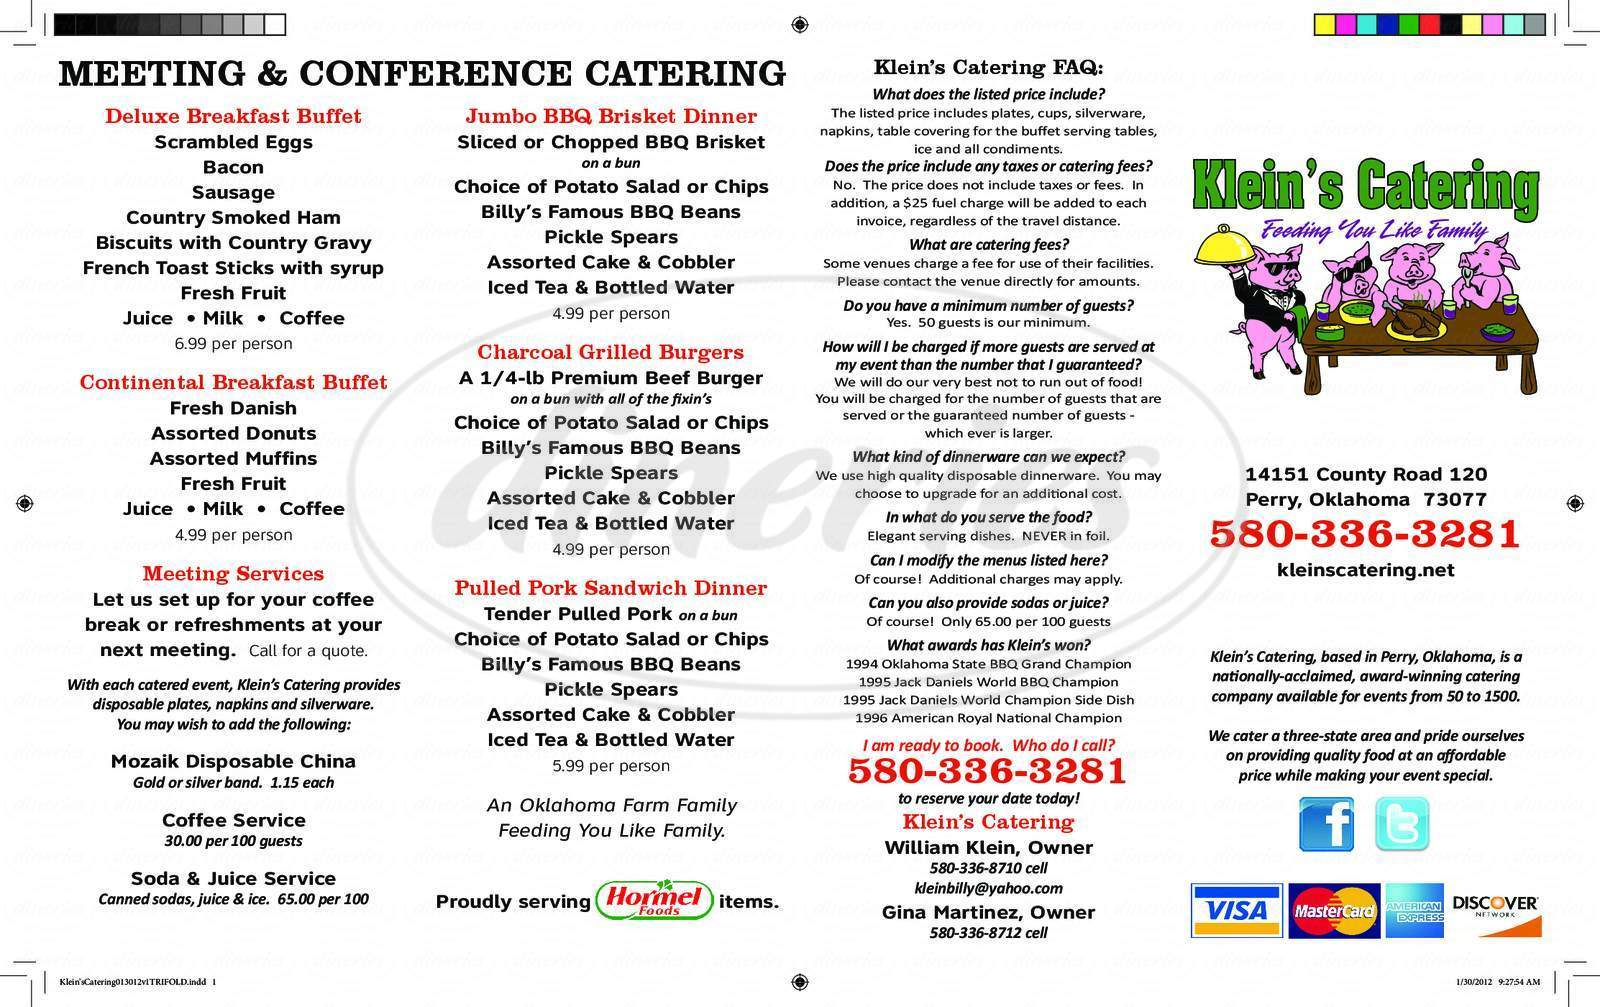 menu for Klein's Catering Services